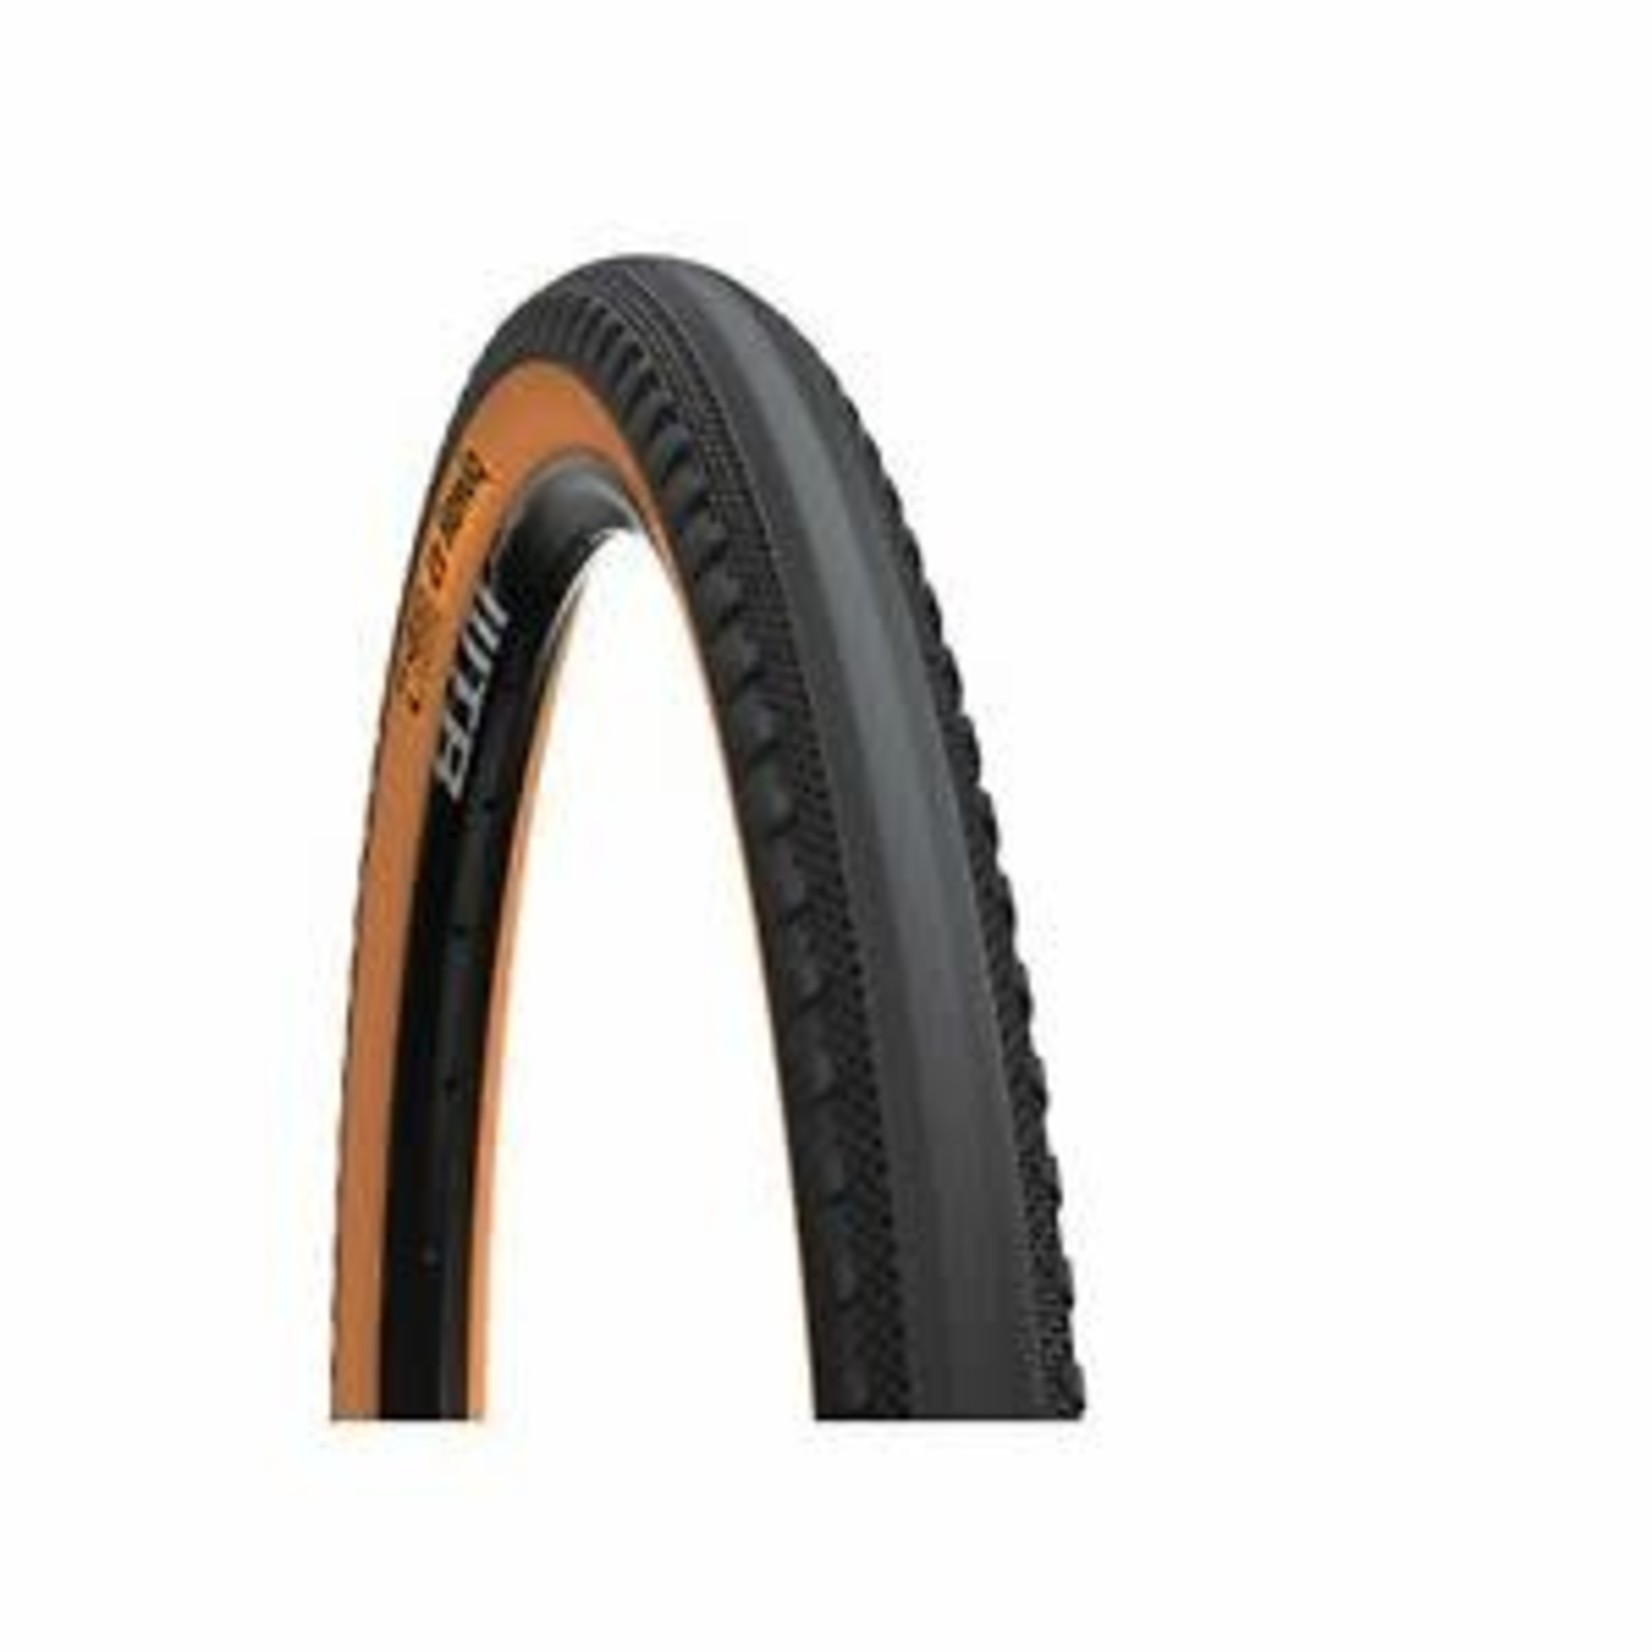 Byway Tire - 650 x 47, TCS Tubeless, Folding, Black/Brown